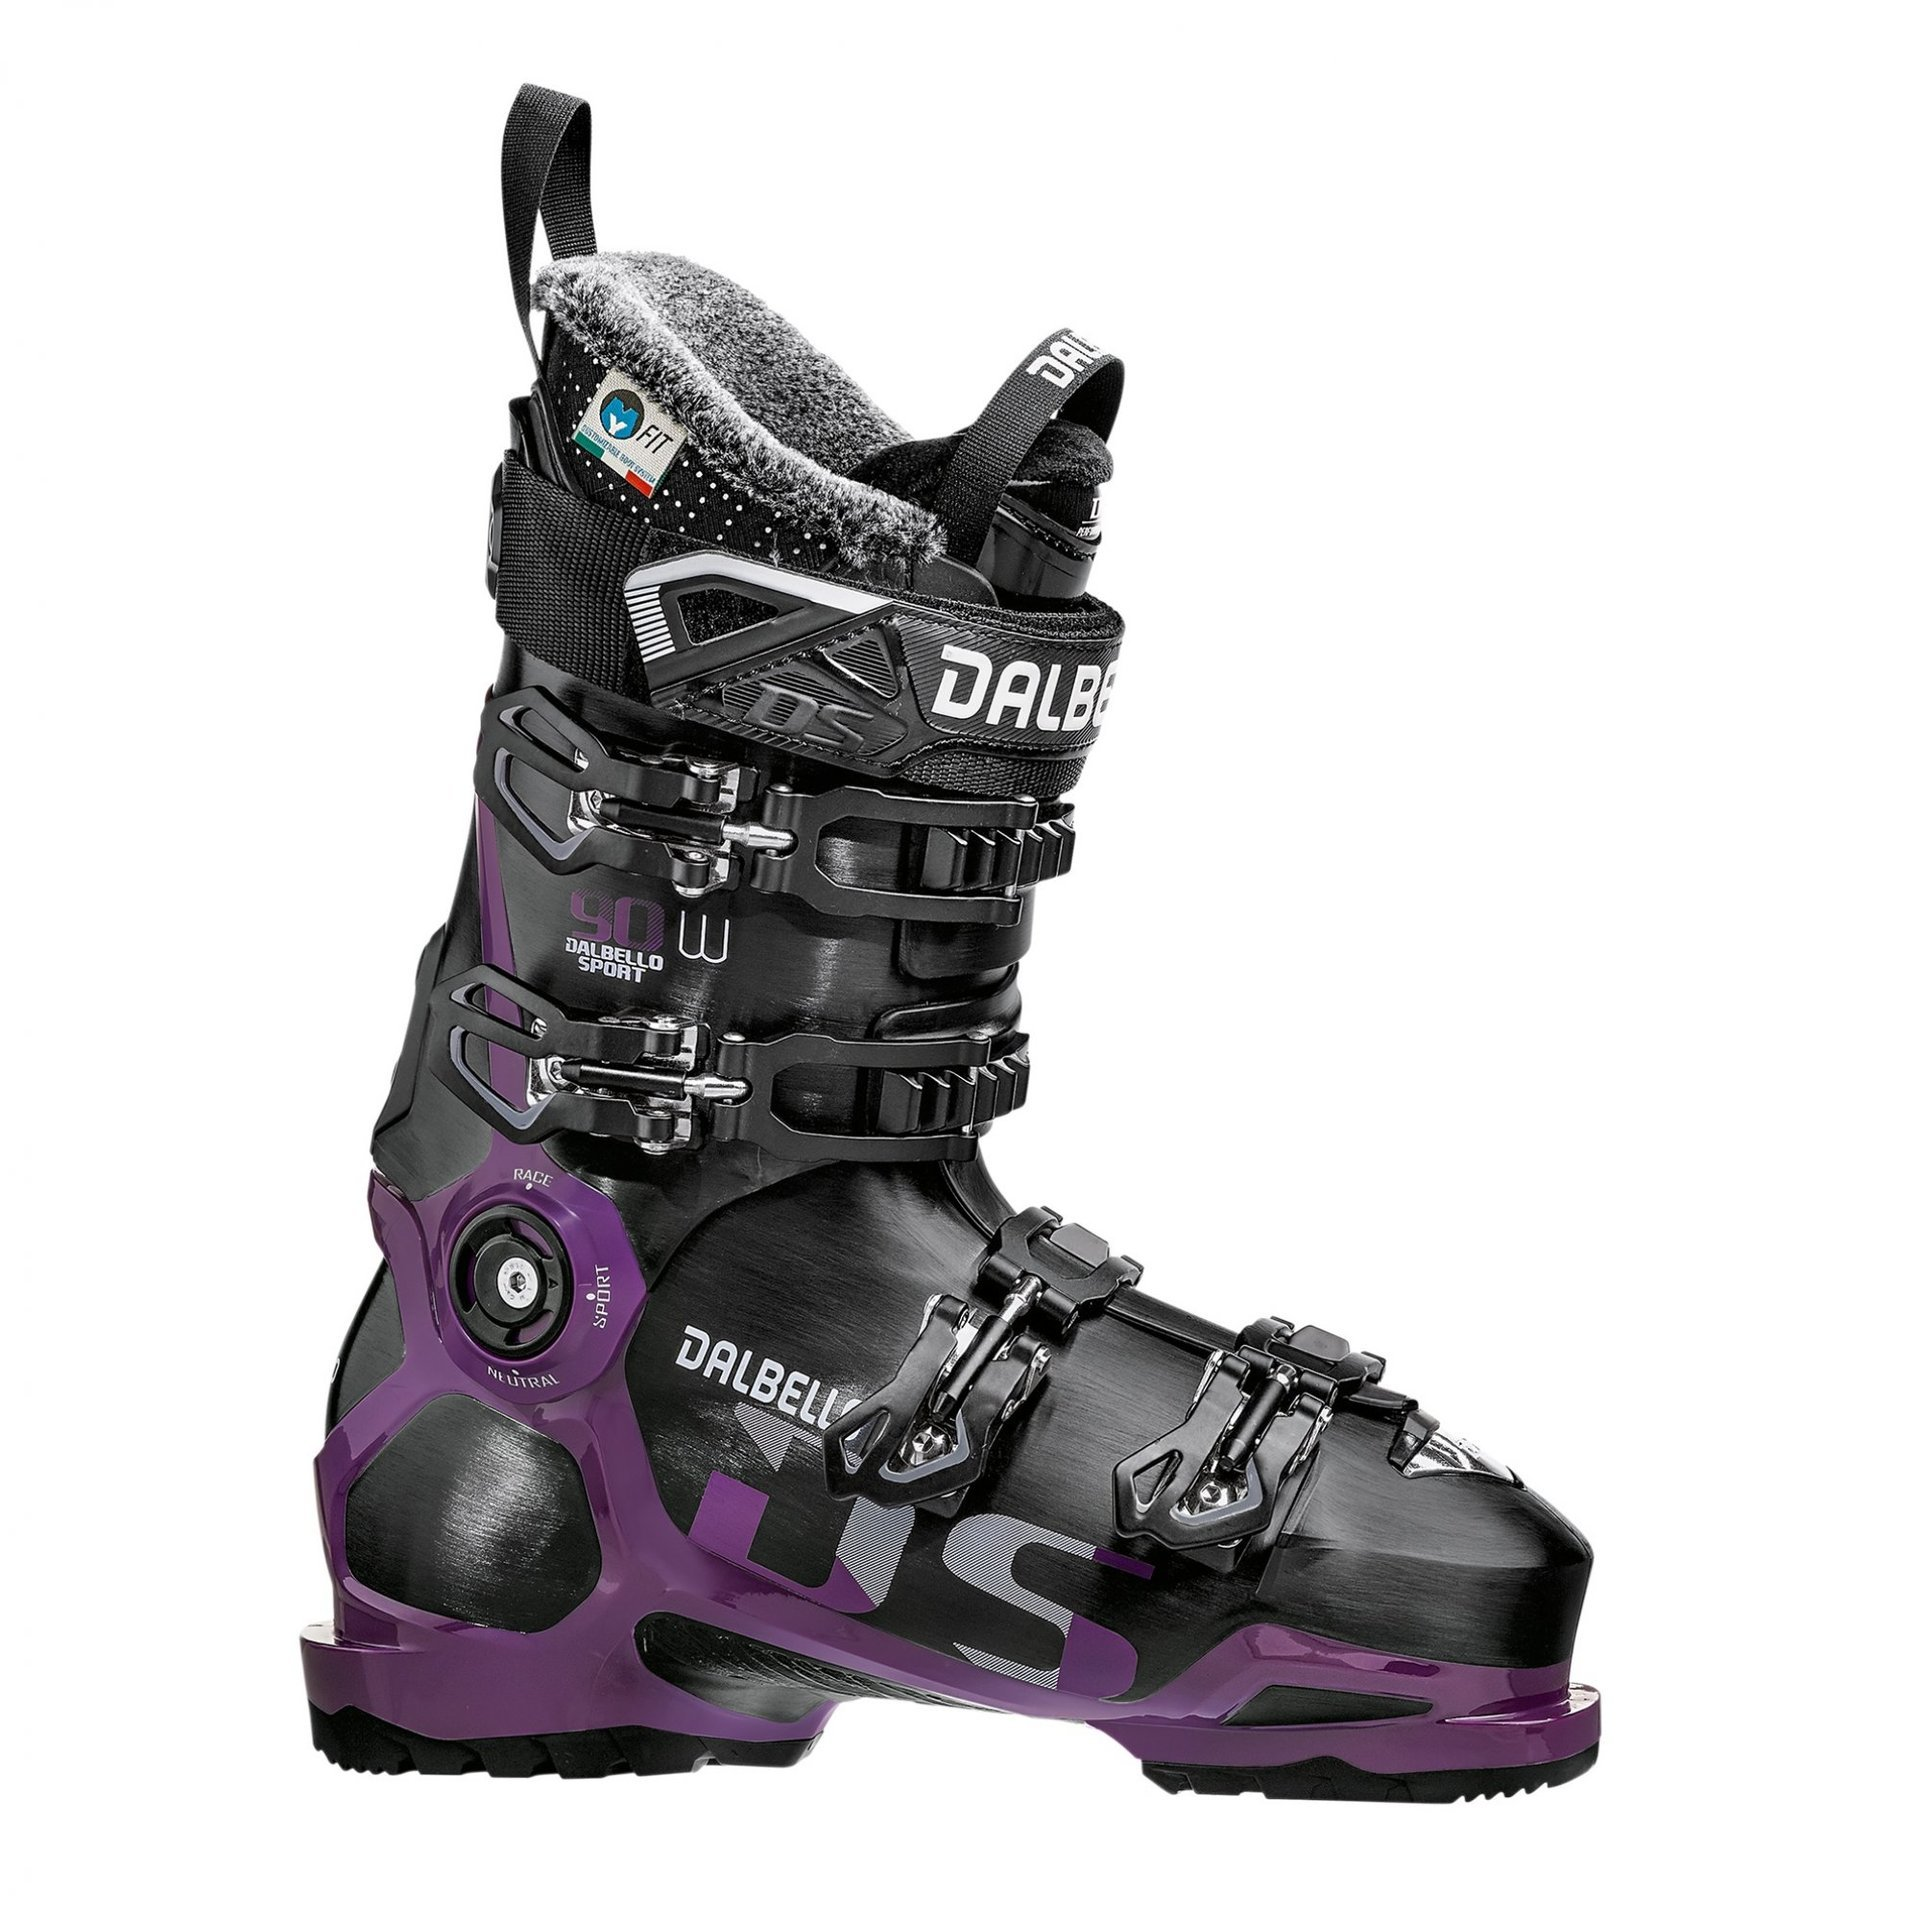 BUTY NARCIARSKIE DALBELLO DS 90 W BLACK|GRAPE